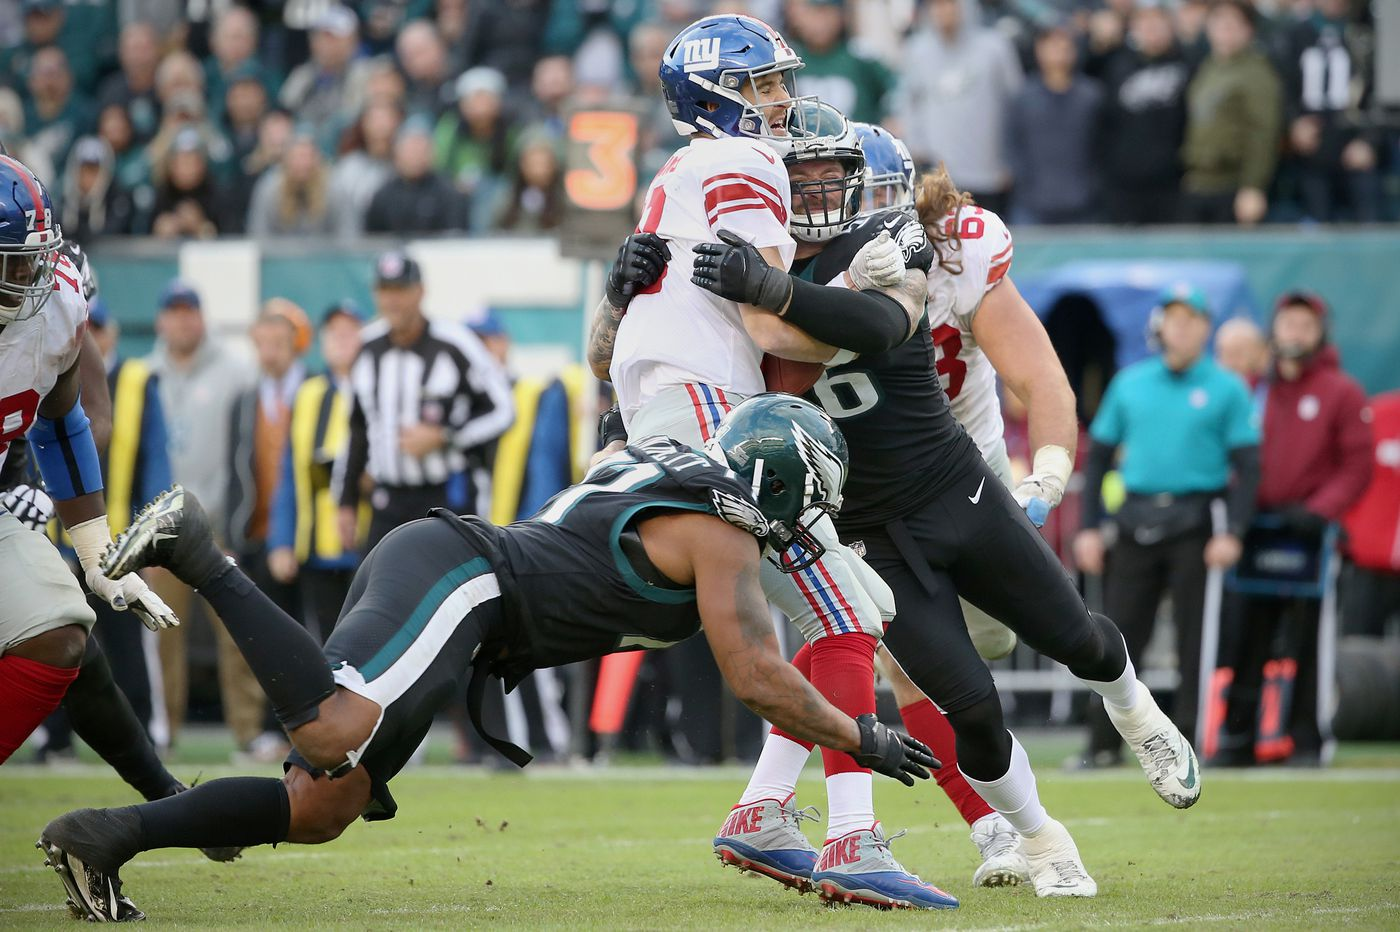 Eagles-Giants: What you need to know about tonight's Week 14 matchup | Paul Domowitch